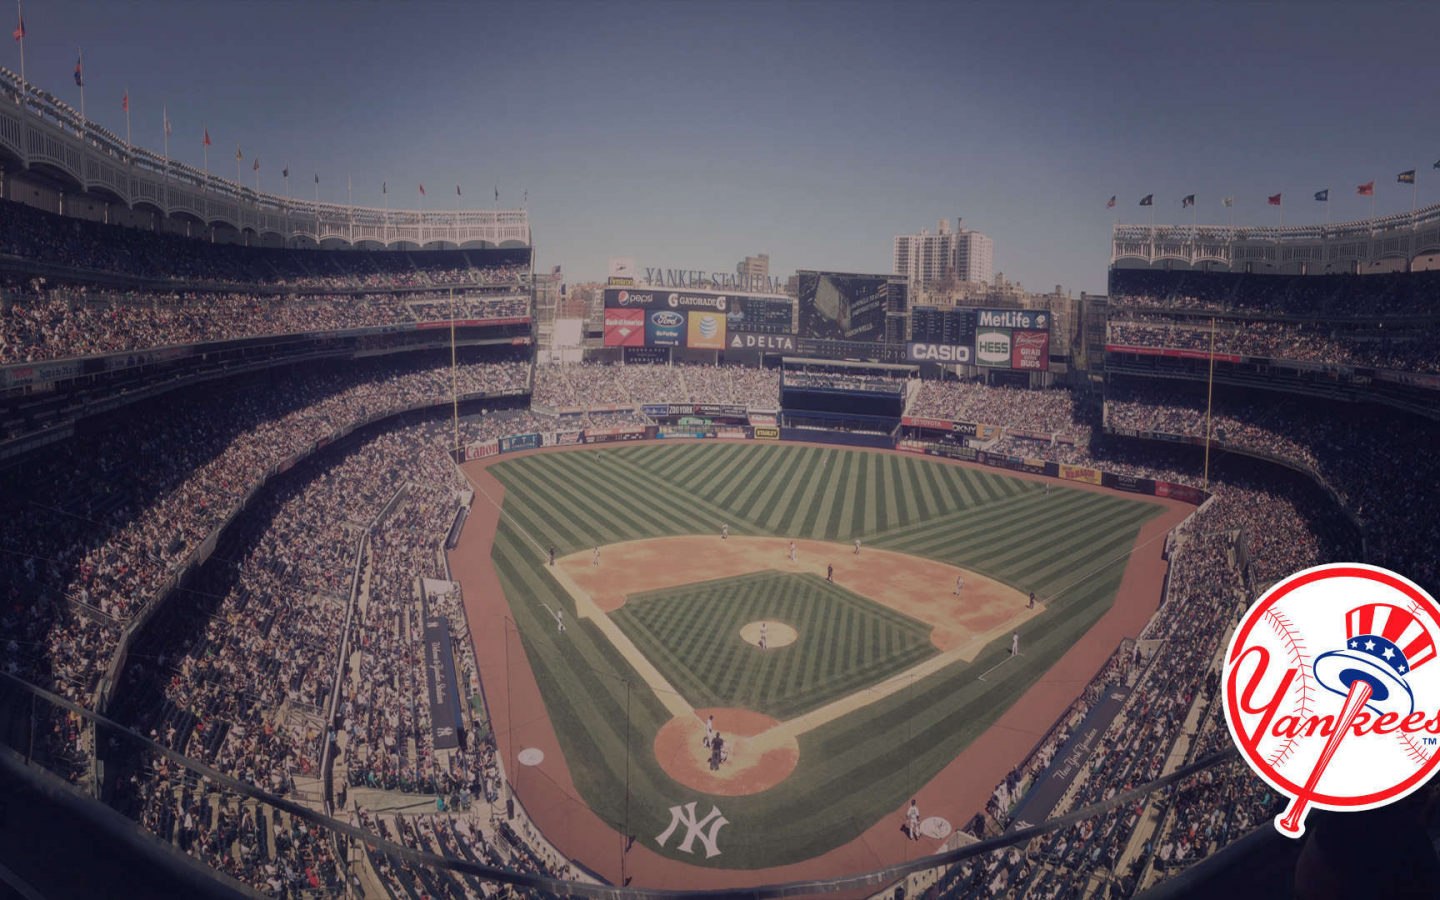 Free Download Wallpaper New York Yankees Hd Wallpaper 1080p Upload At April 27 1920x1080 For Your Desktop Mobile Tablet Explore 49 Buy New York Yankees Wallpaper Mlb Wallpaper Yankee Wallpaper